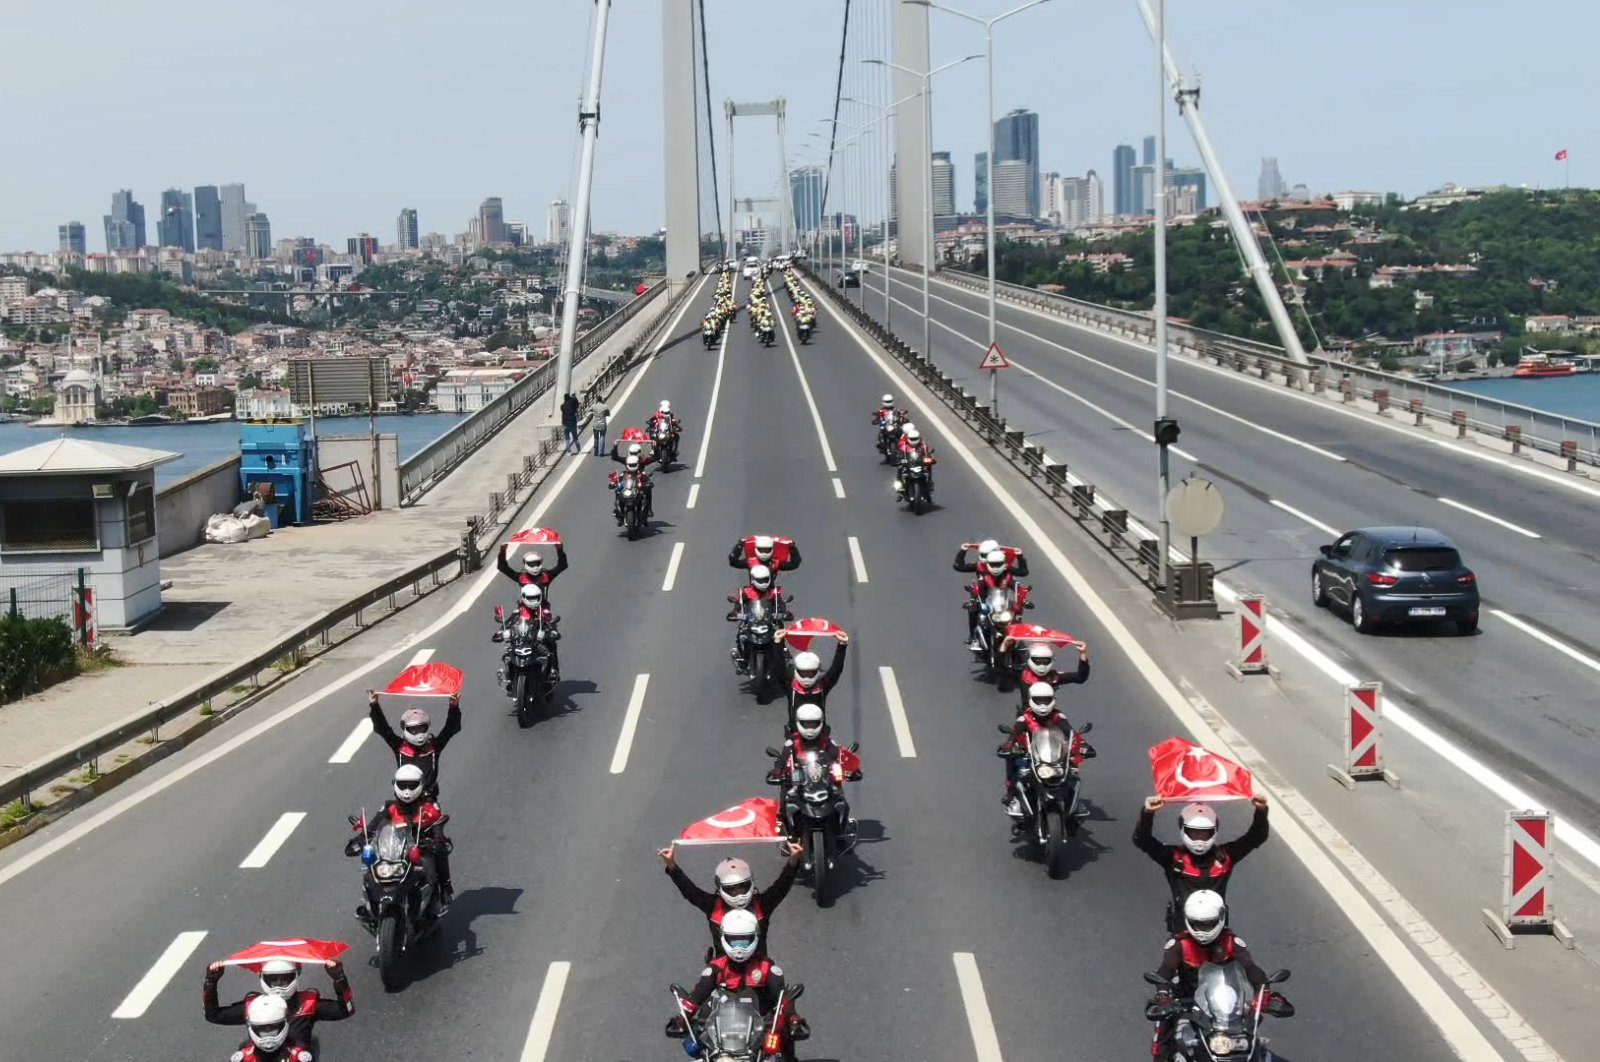 A Turkish police cortege takes place on the Bosporus Bridge, which is almost empty due to the four-day curfew imposed as part of the coronavirus struggle, Istanbul, Turkey, May 19, 2020. (DHA Photo)